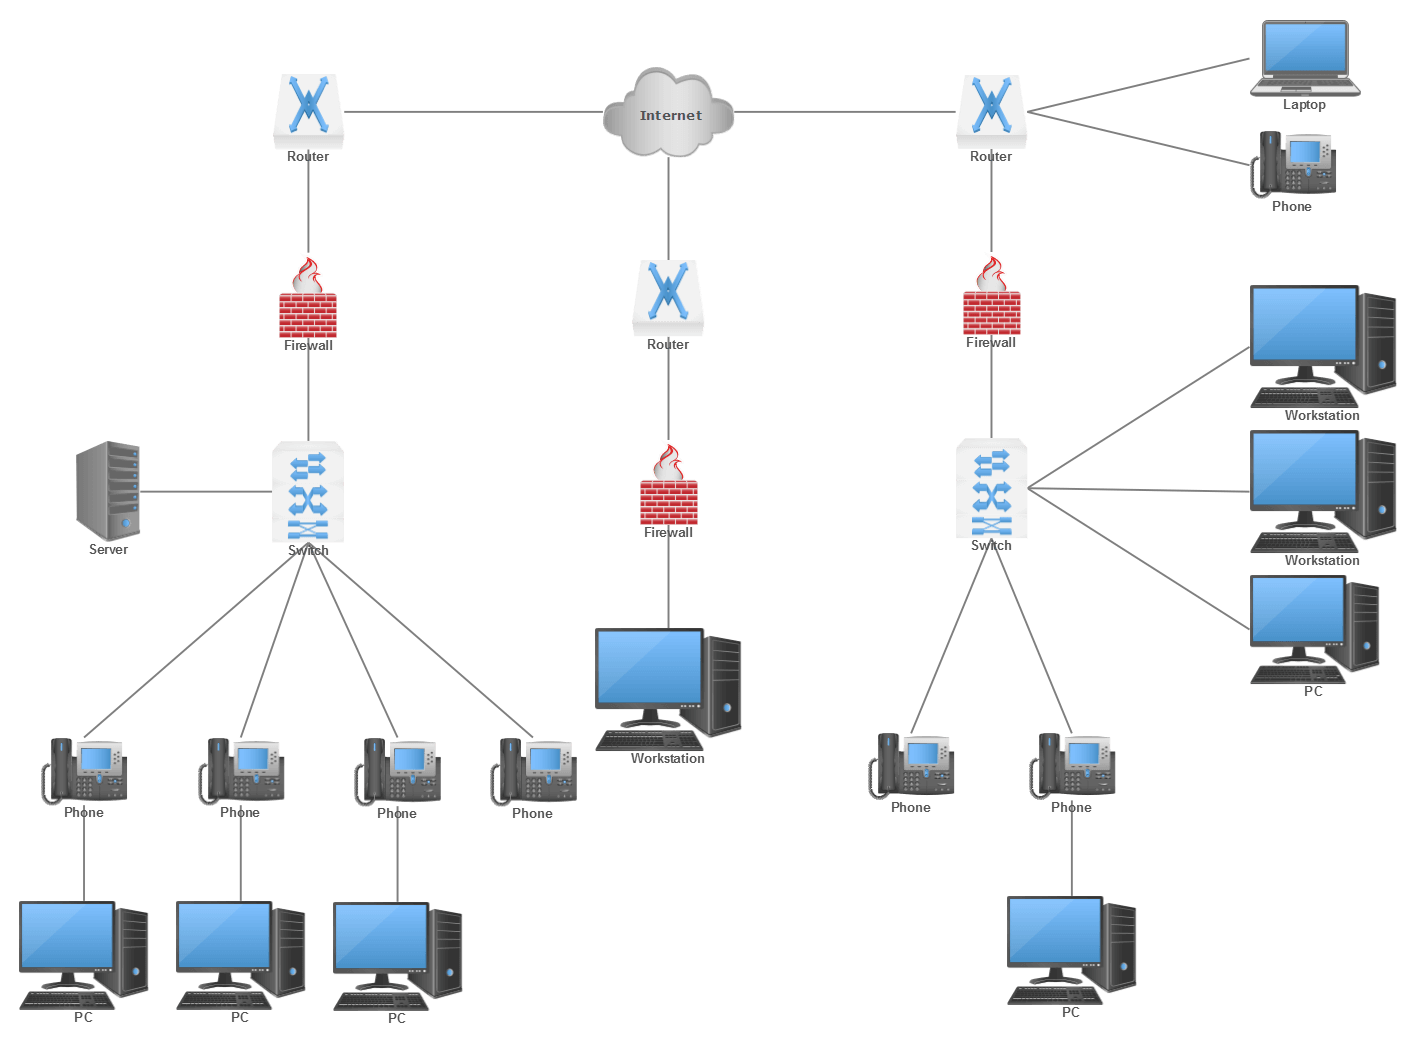 network diagrams tools yelom agdiffusion com rh yelom agdiffusion com  network schematic diagram software data network